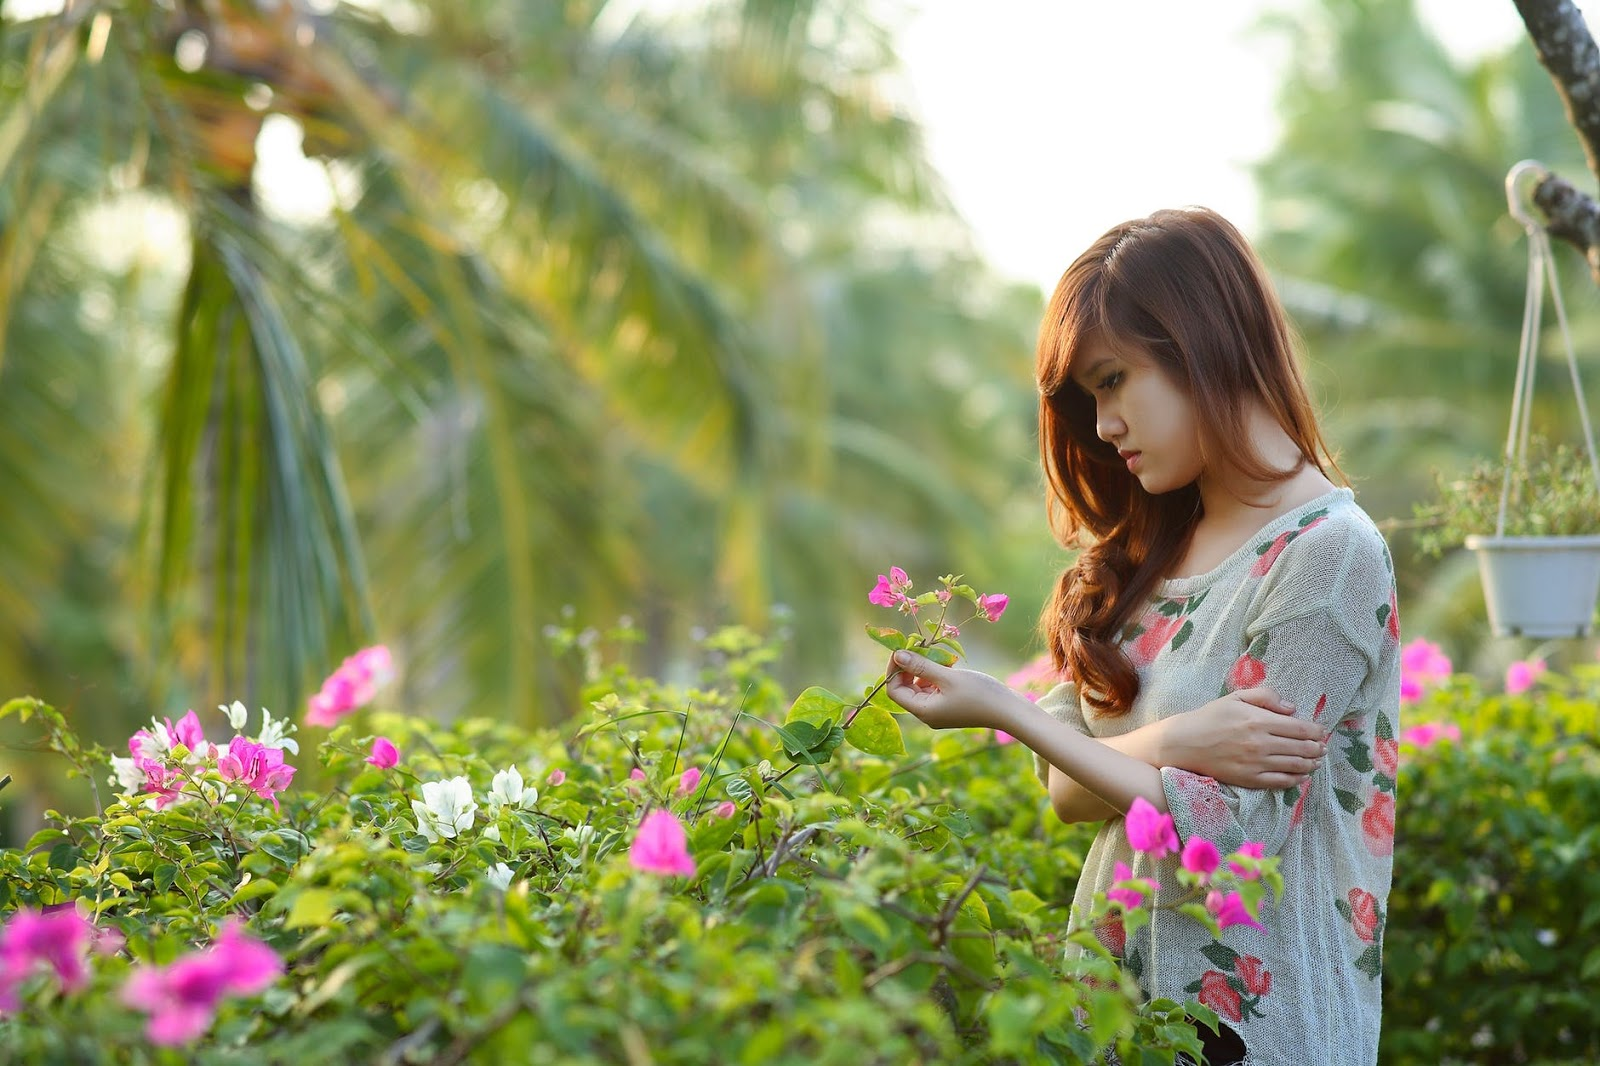 A sad woman looks down at a flower as she stands in a garden.